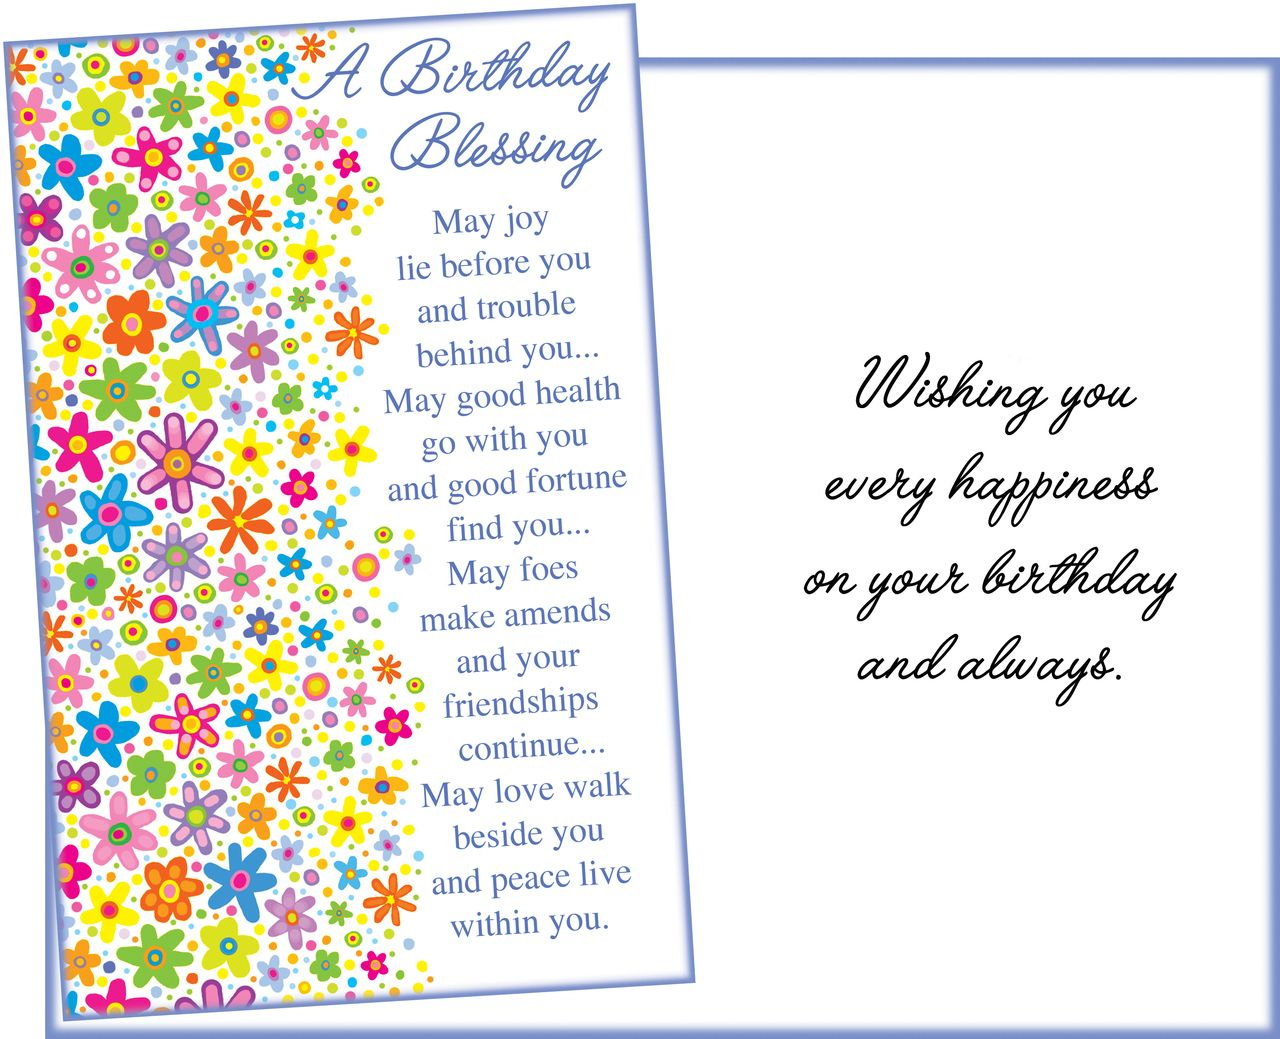 87053 Six Religious Birthday Greeting Cards With Envelopes